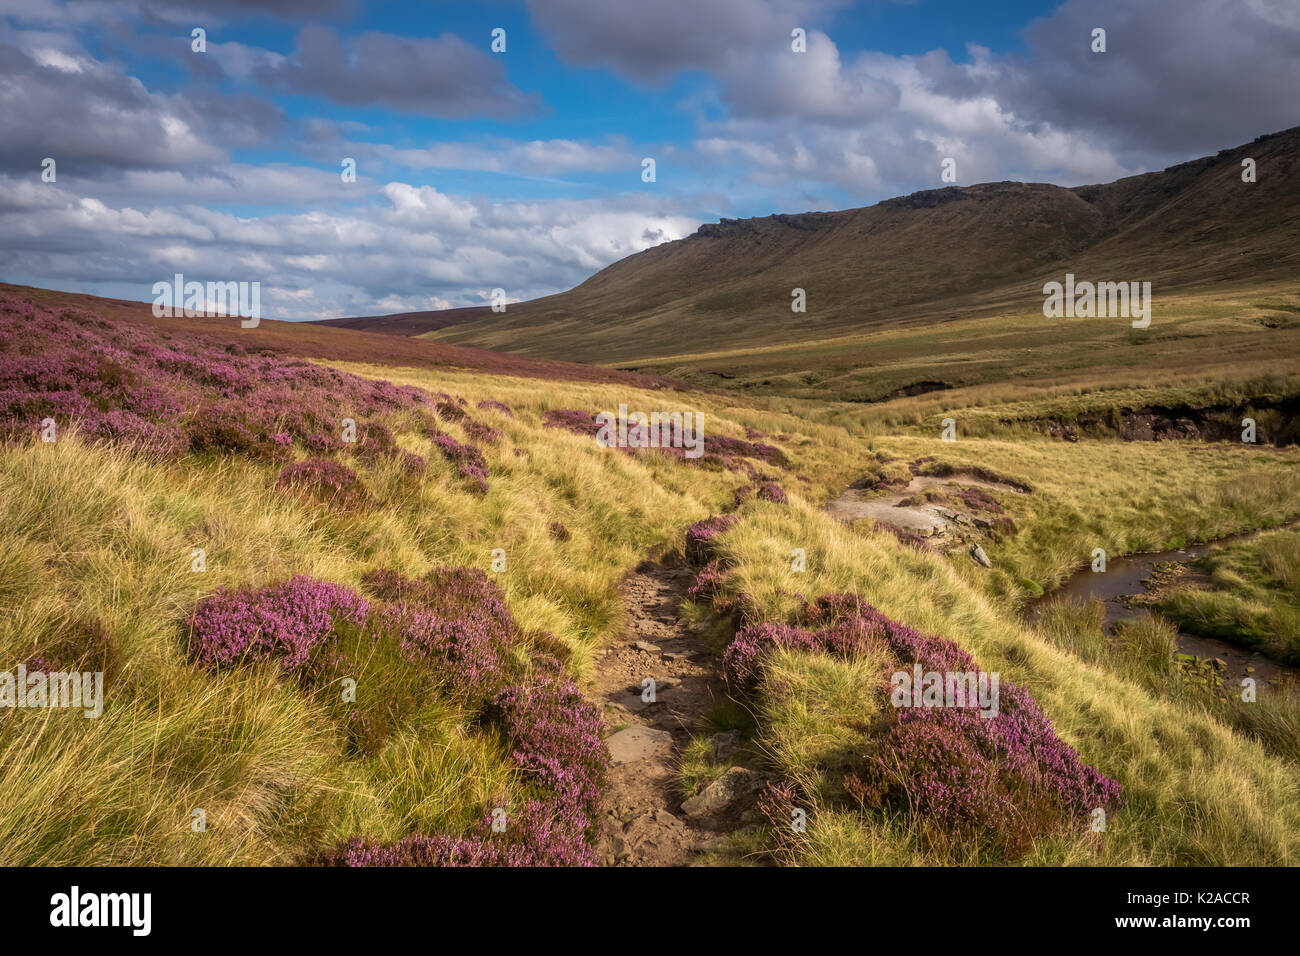 On the Pennine Way in the Dark Peak district of Derbyshire. The Pennine Way is a 250 mile long distance footpathe along the backbone of England. - Stock Image